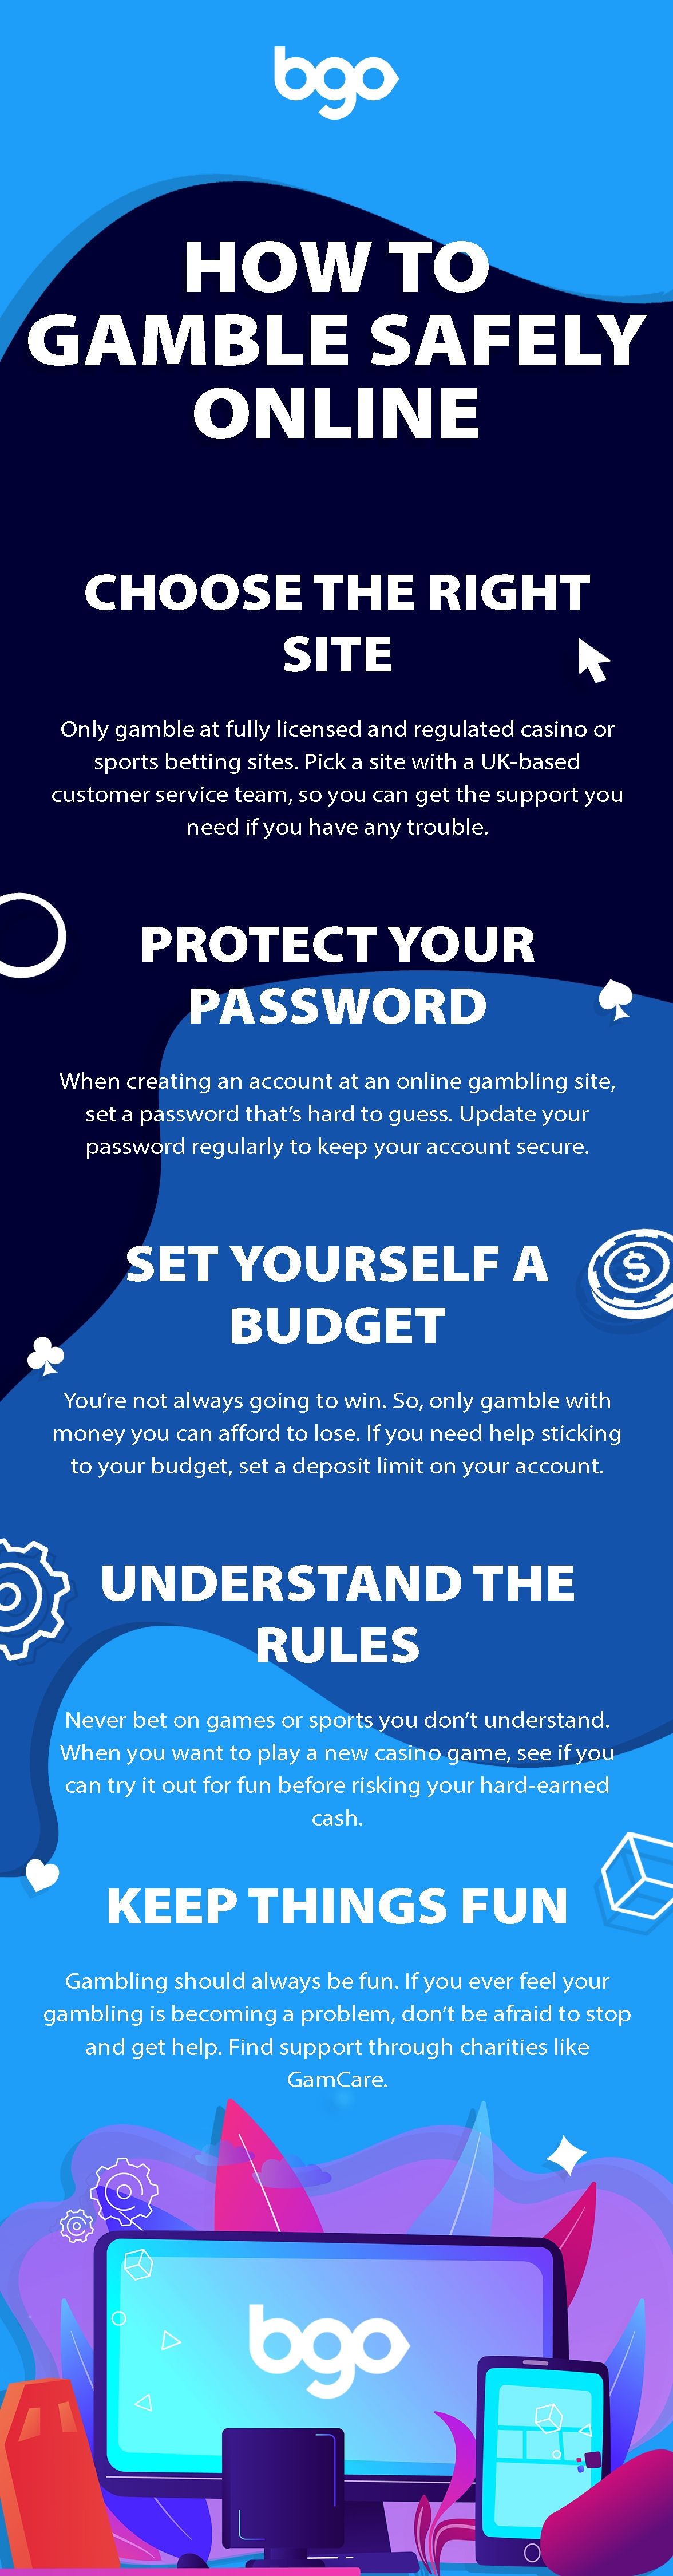 How to gamble safely online infographic